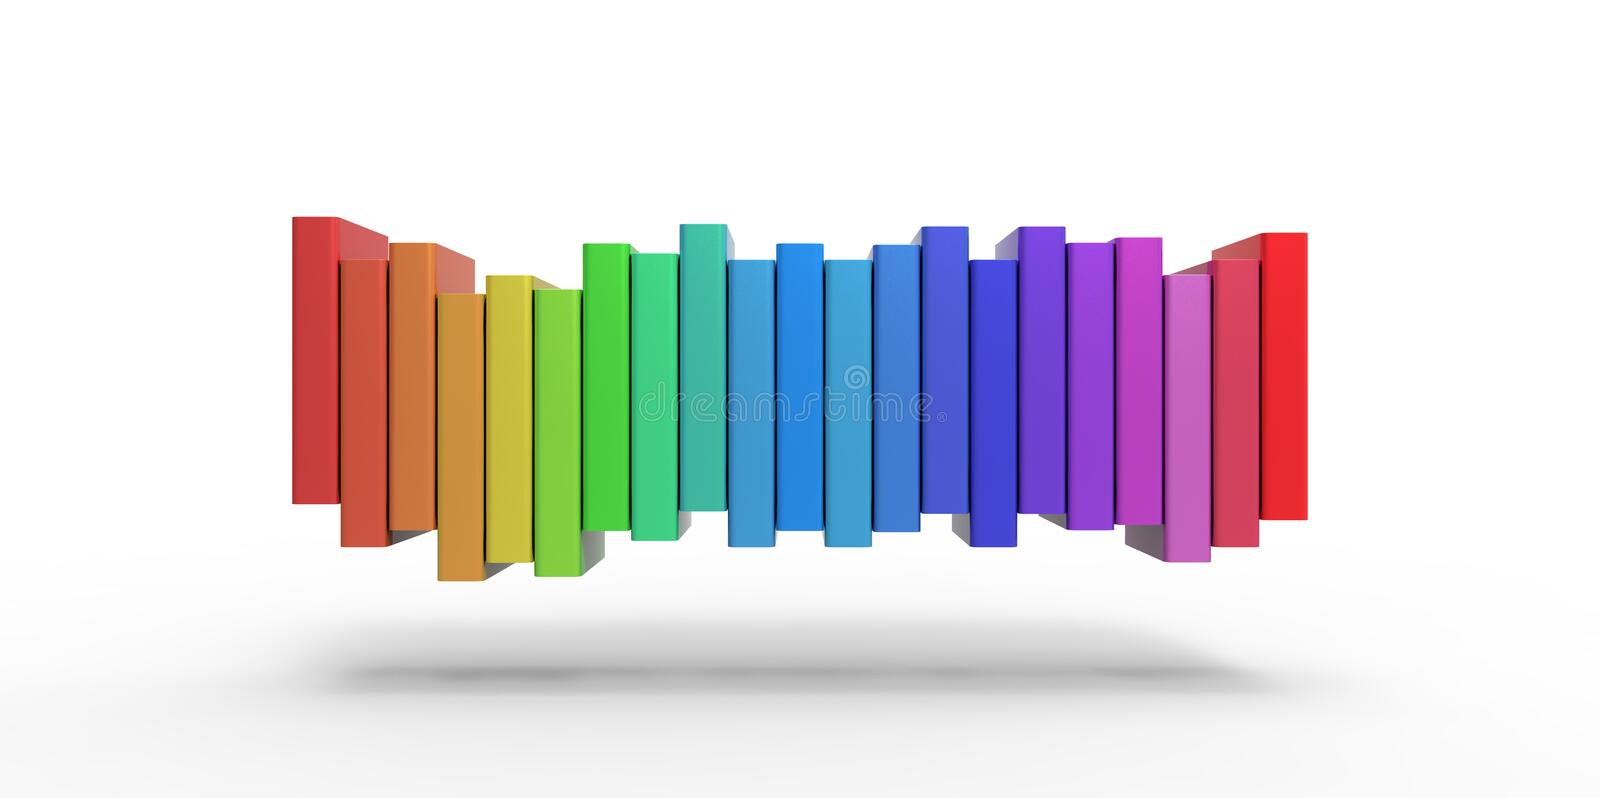 Row stack of colorful books on a plain background vector illustration